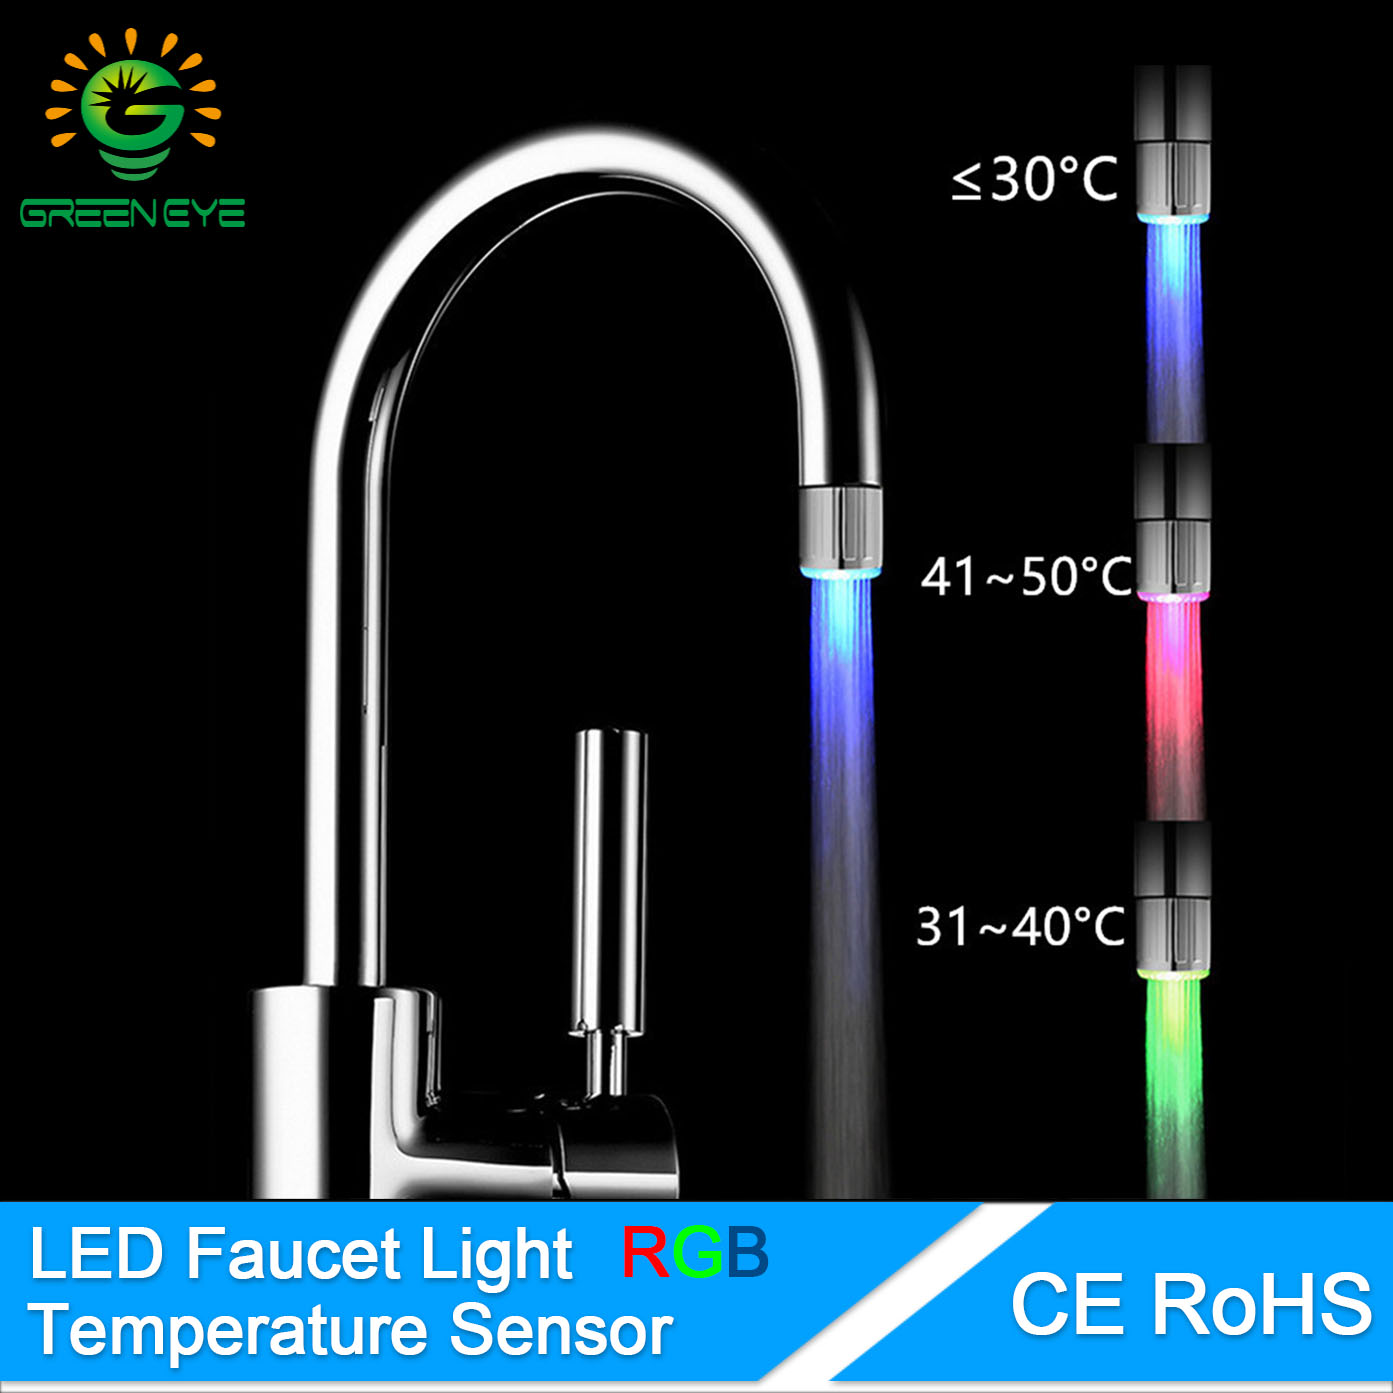 Bathroom Faucets That Light Up compare prices on light up faucet- online shopping/buy low price